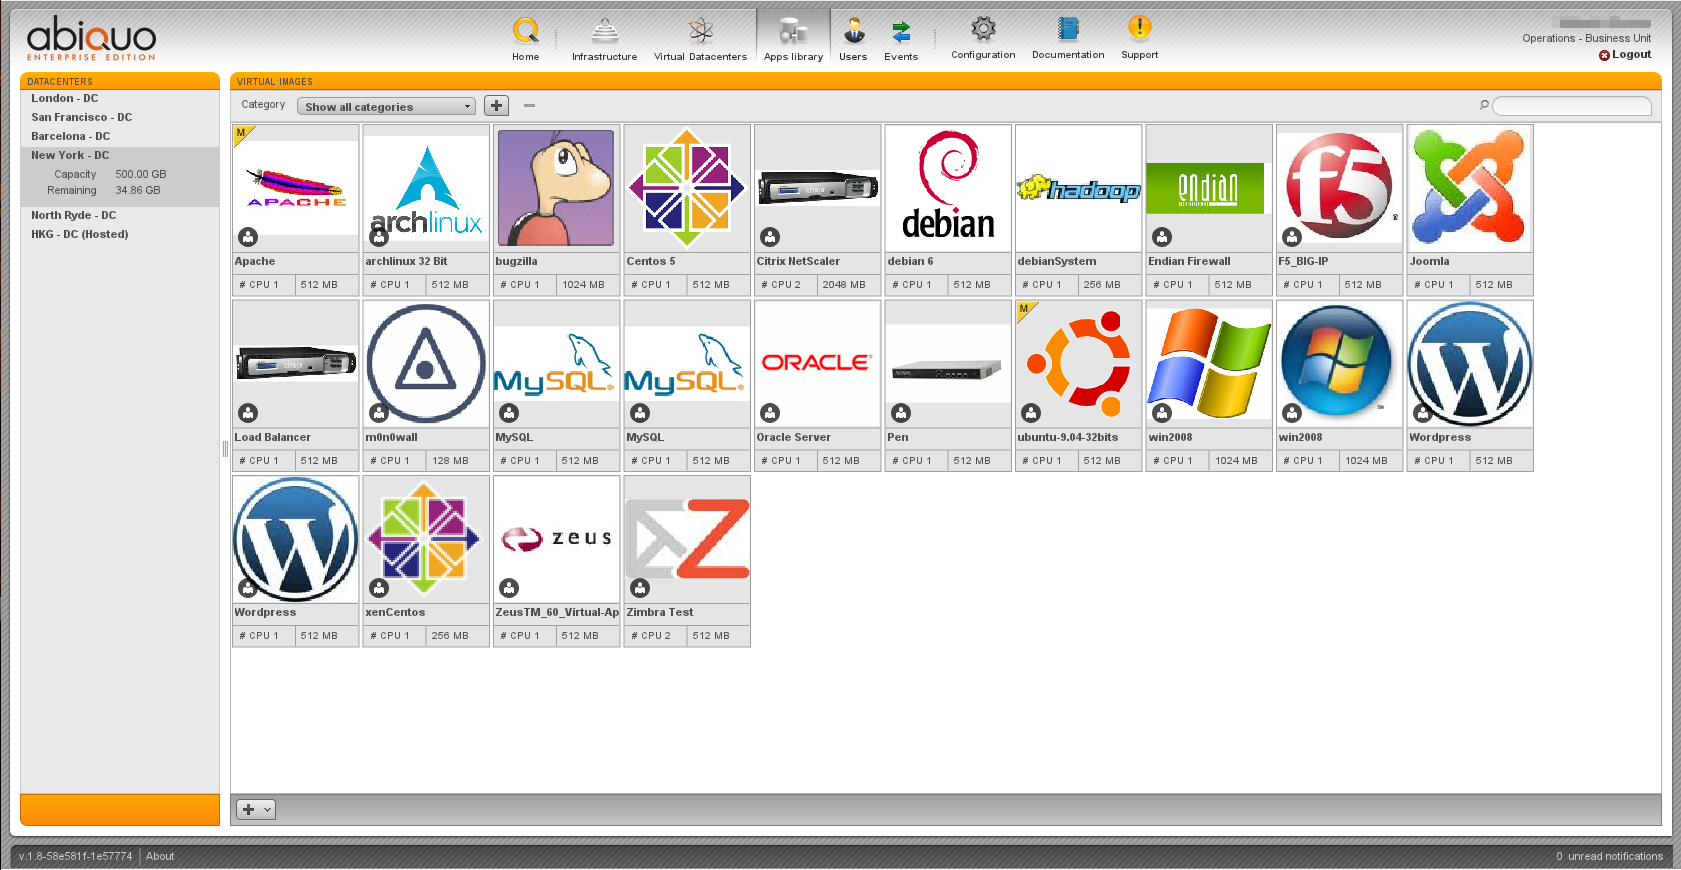 Abiquo anyCloud apps library